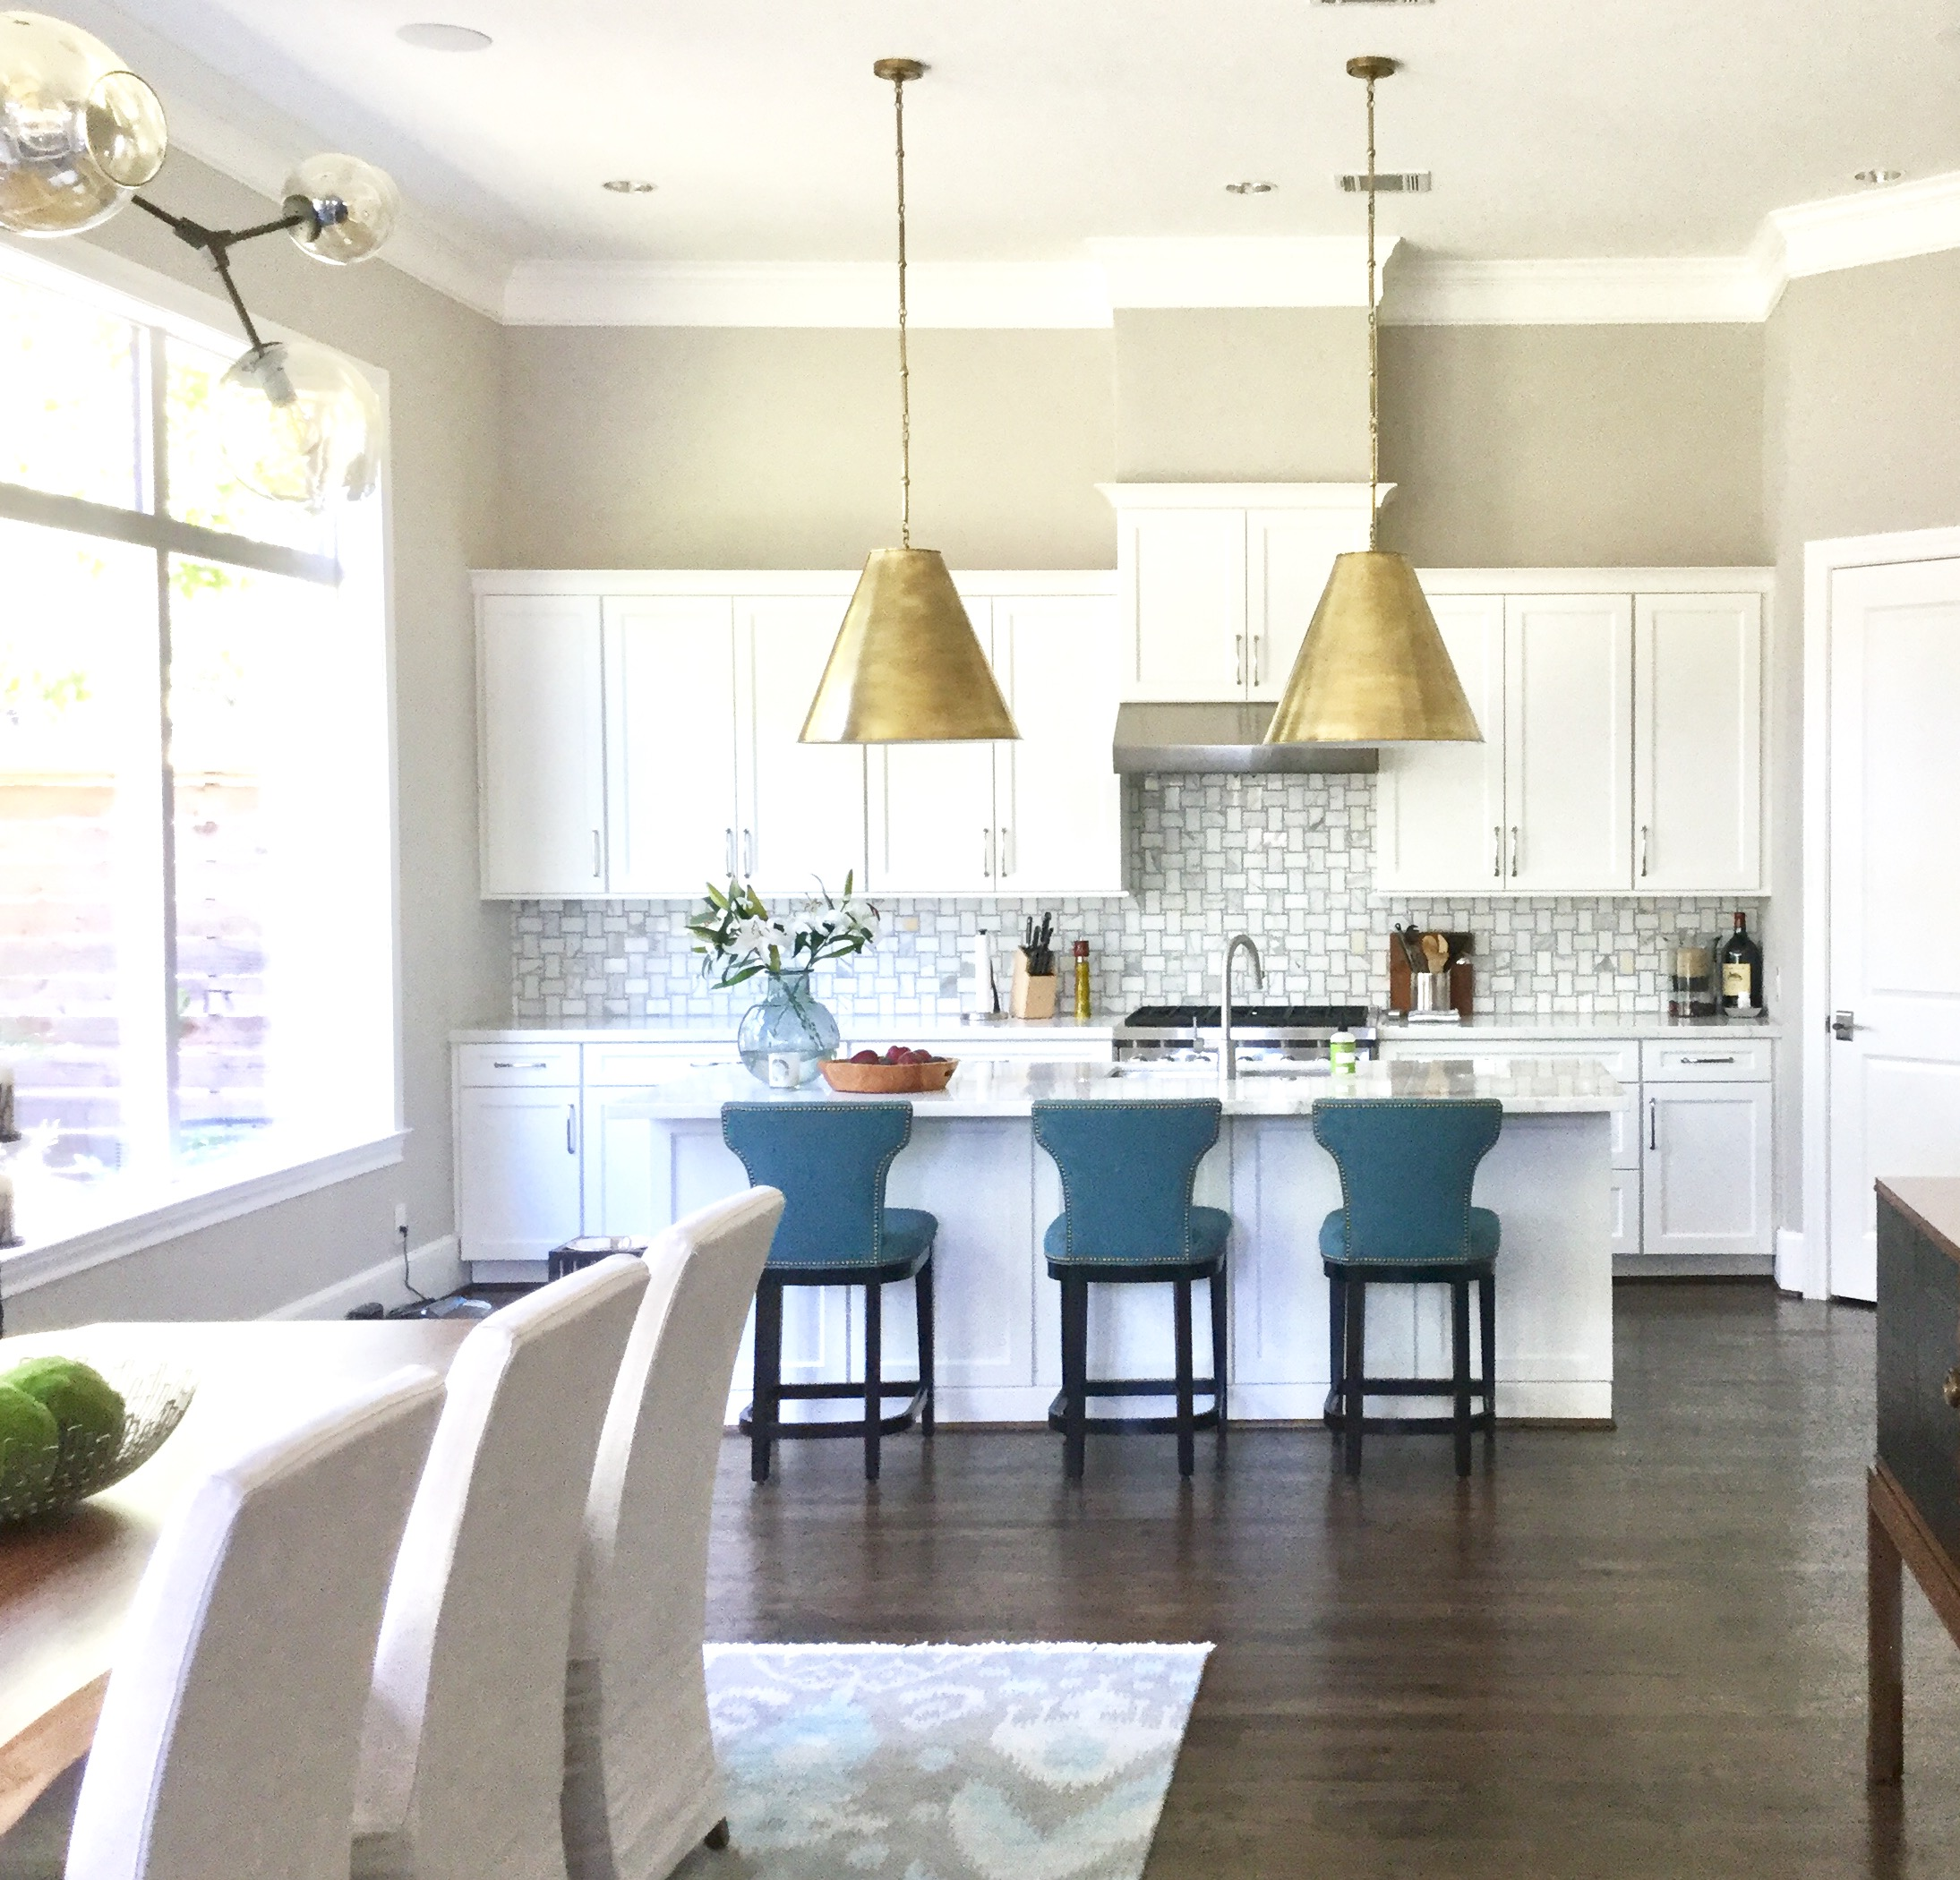 kitchen island pendant lights commercial floor cleaning 7 considerations for lighting selection large brass cone shaped fixtures carla aston designer